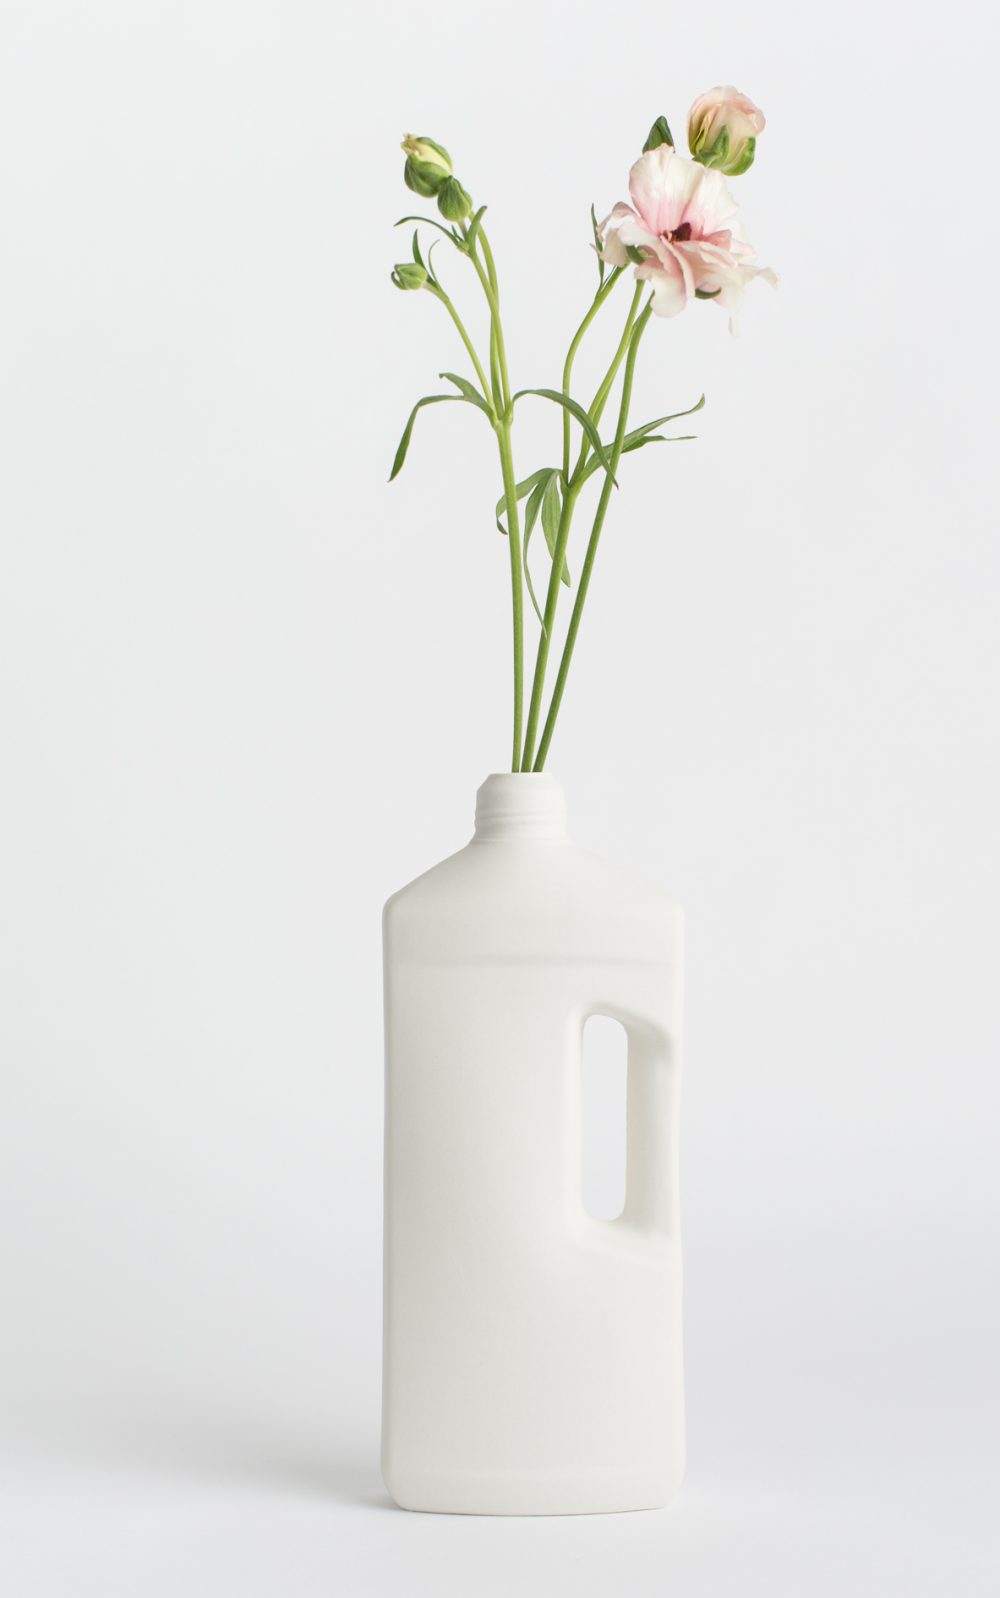 bottle vase #3 white with flower